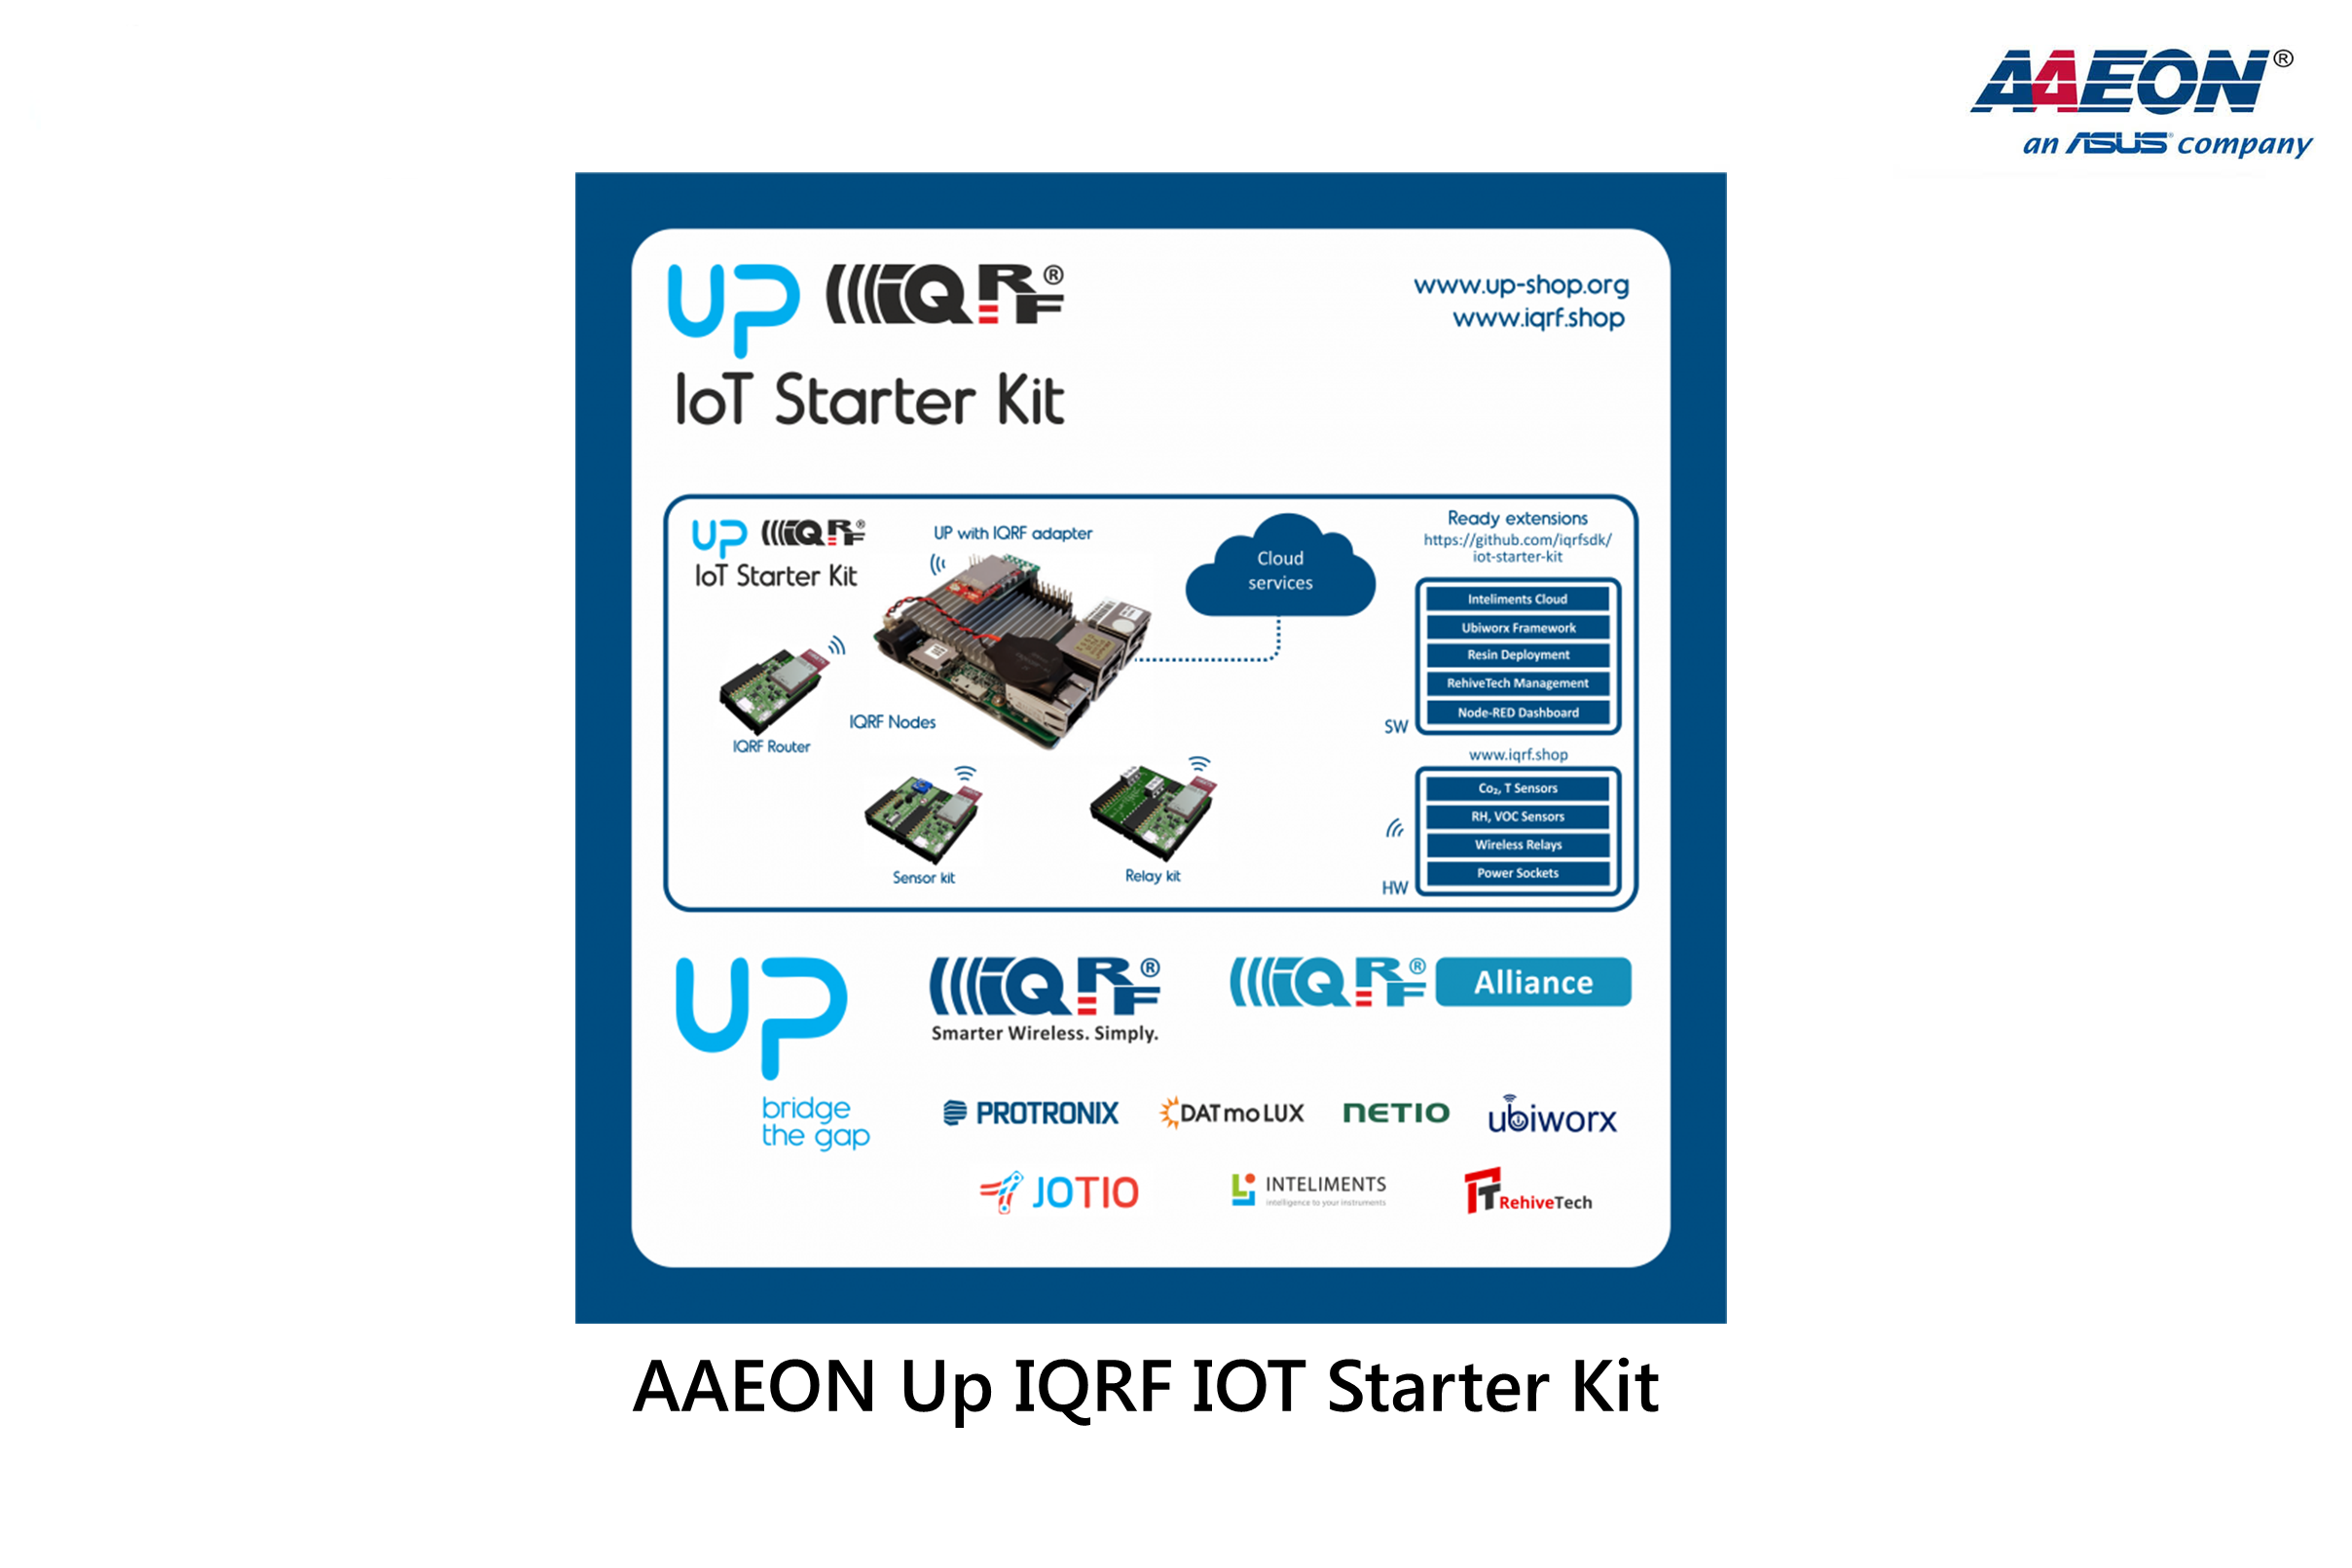 AAEON Up IQRF IoT Starter Kit